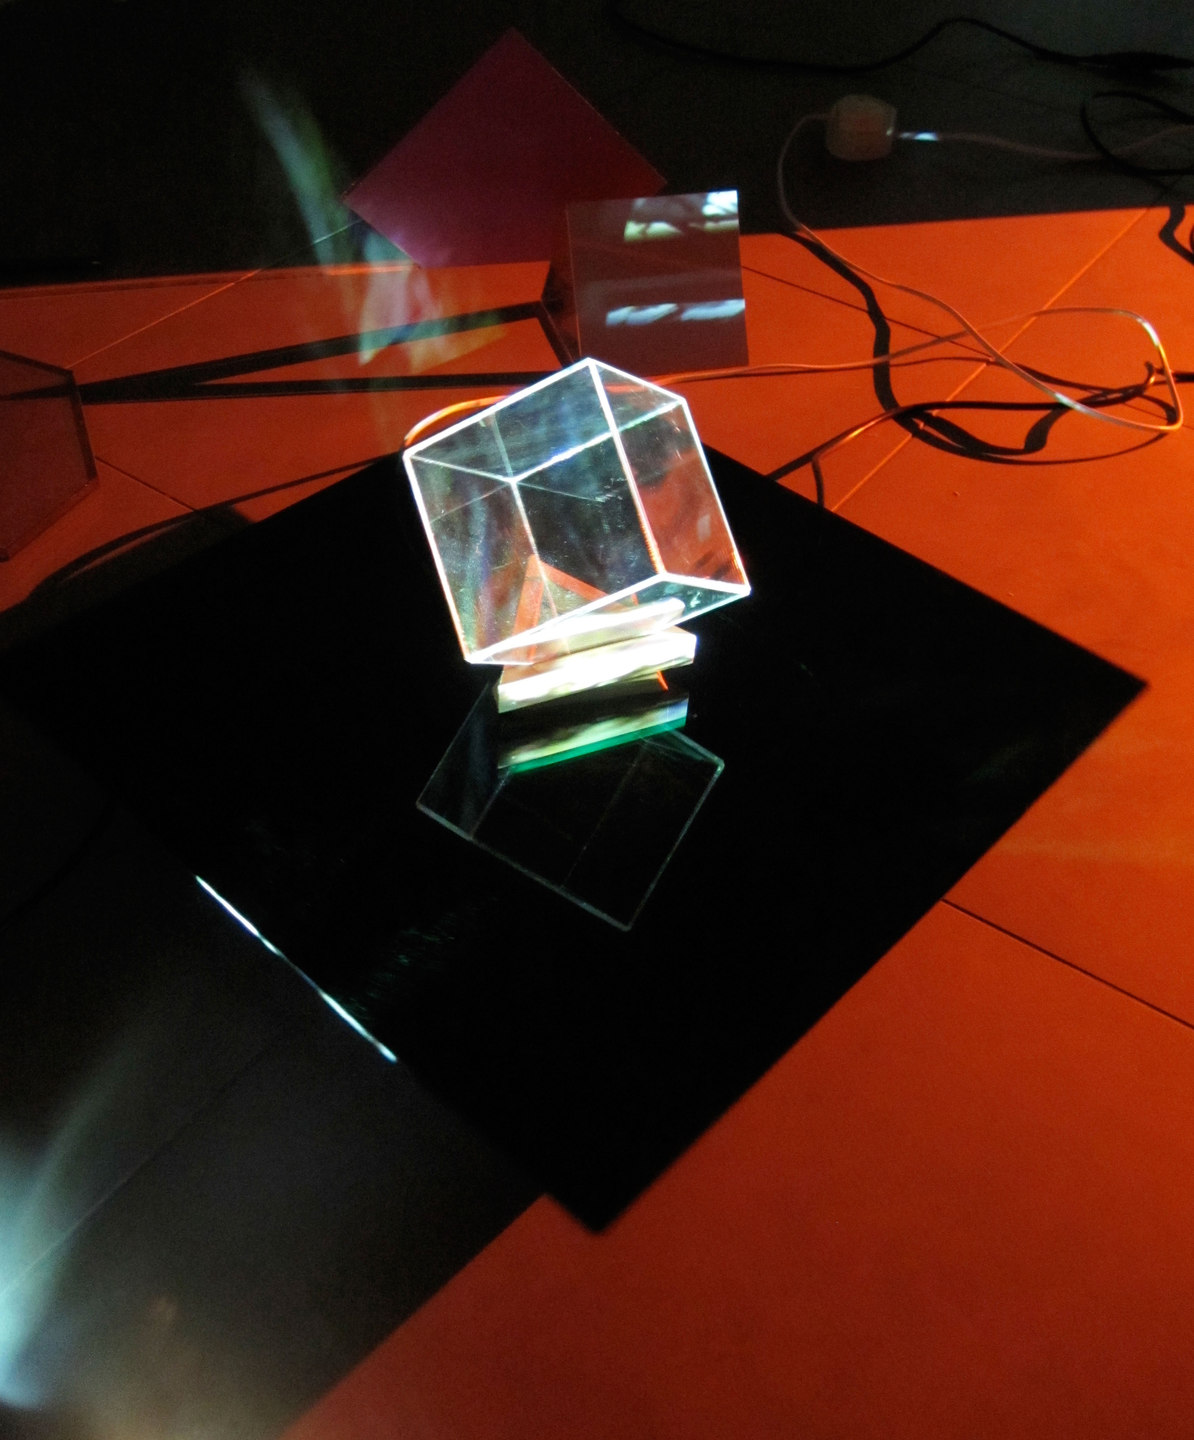 Laura Buckley, Extramundane 2010, Perspex, wood, mirror, motors, music lecterns, 3 video projections, audio (dimensions variable), Cell Project Space